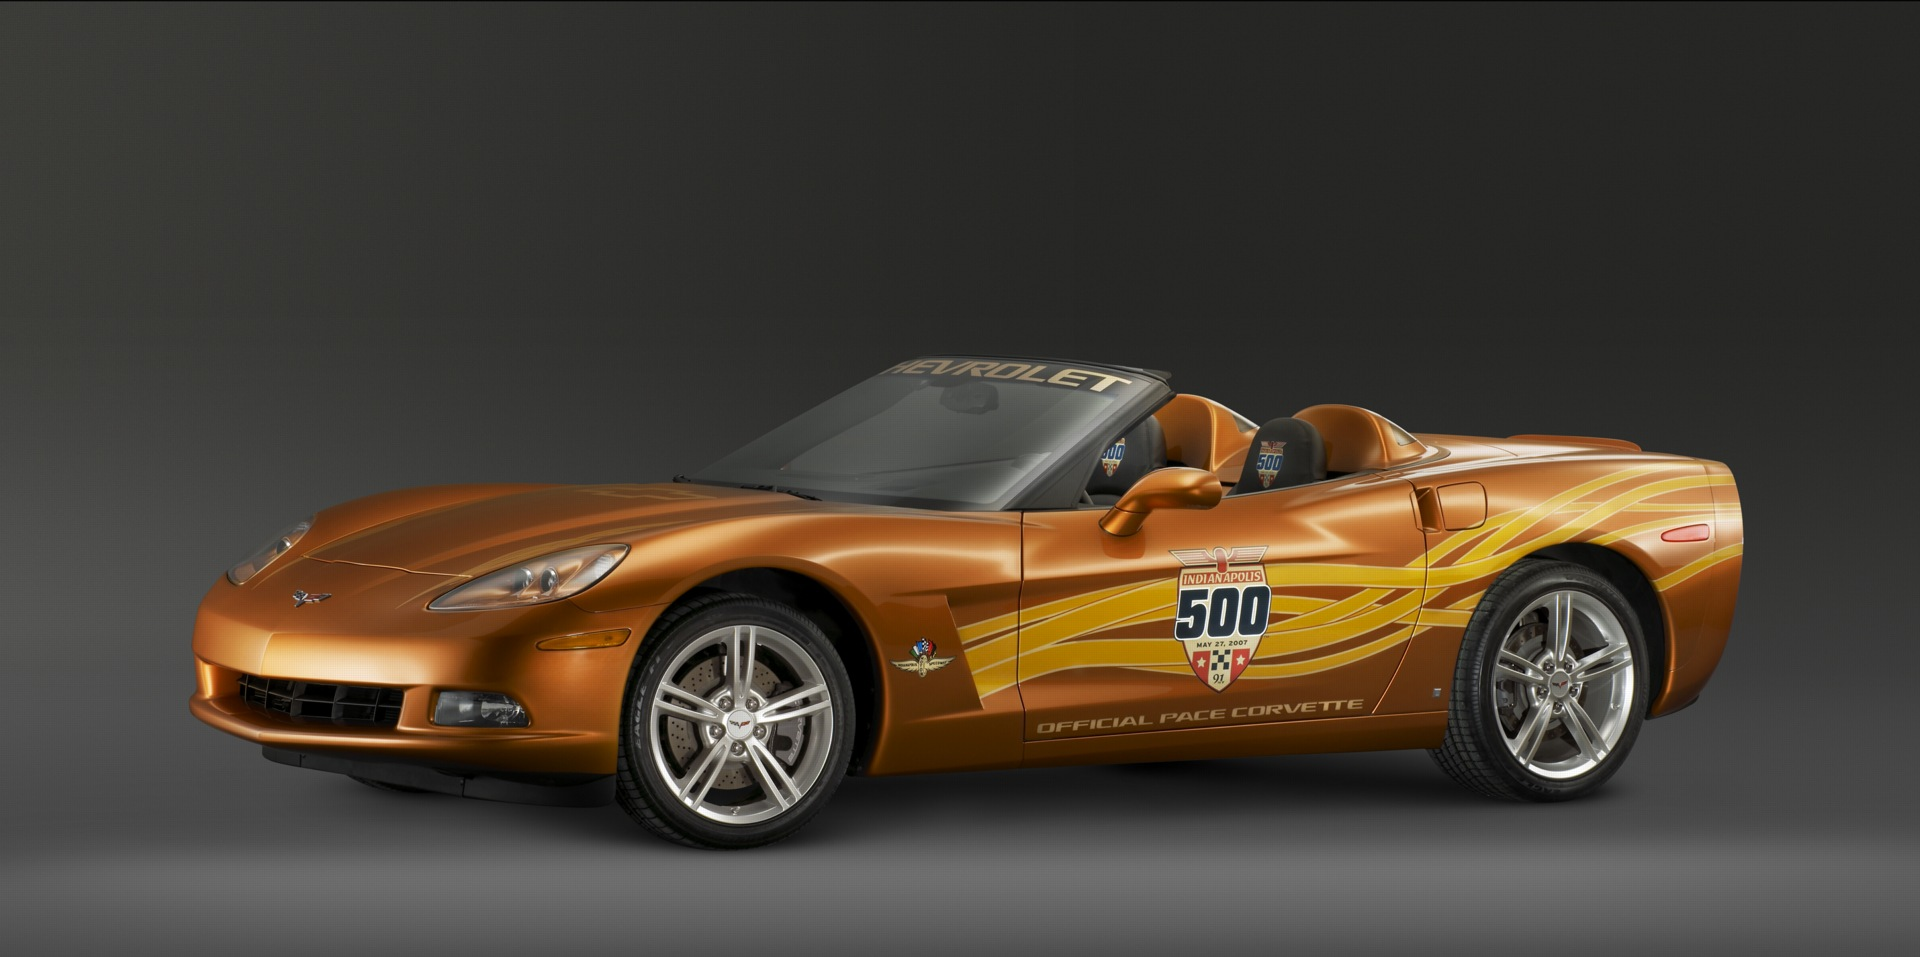 2007 Chevrolet Corvette Indy 500 Pace Car History